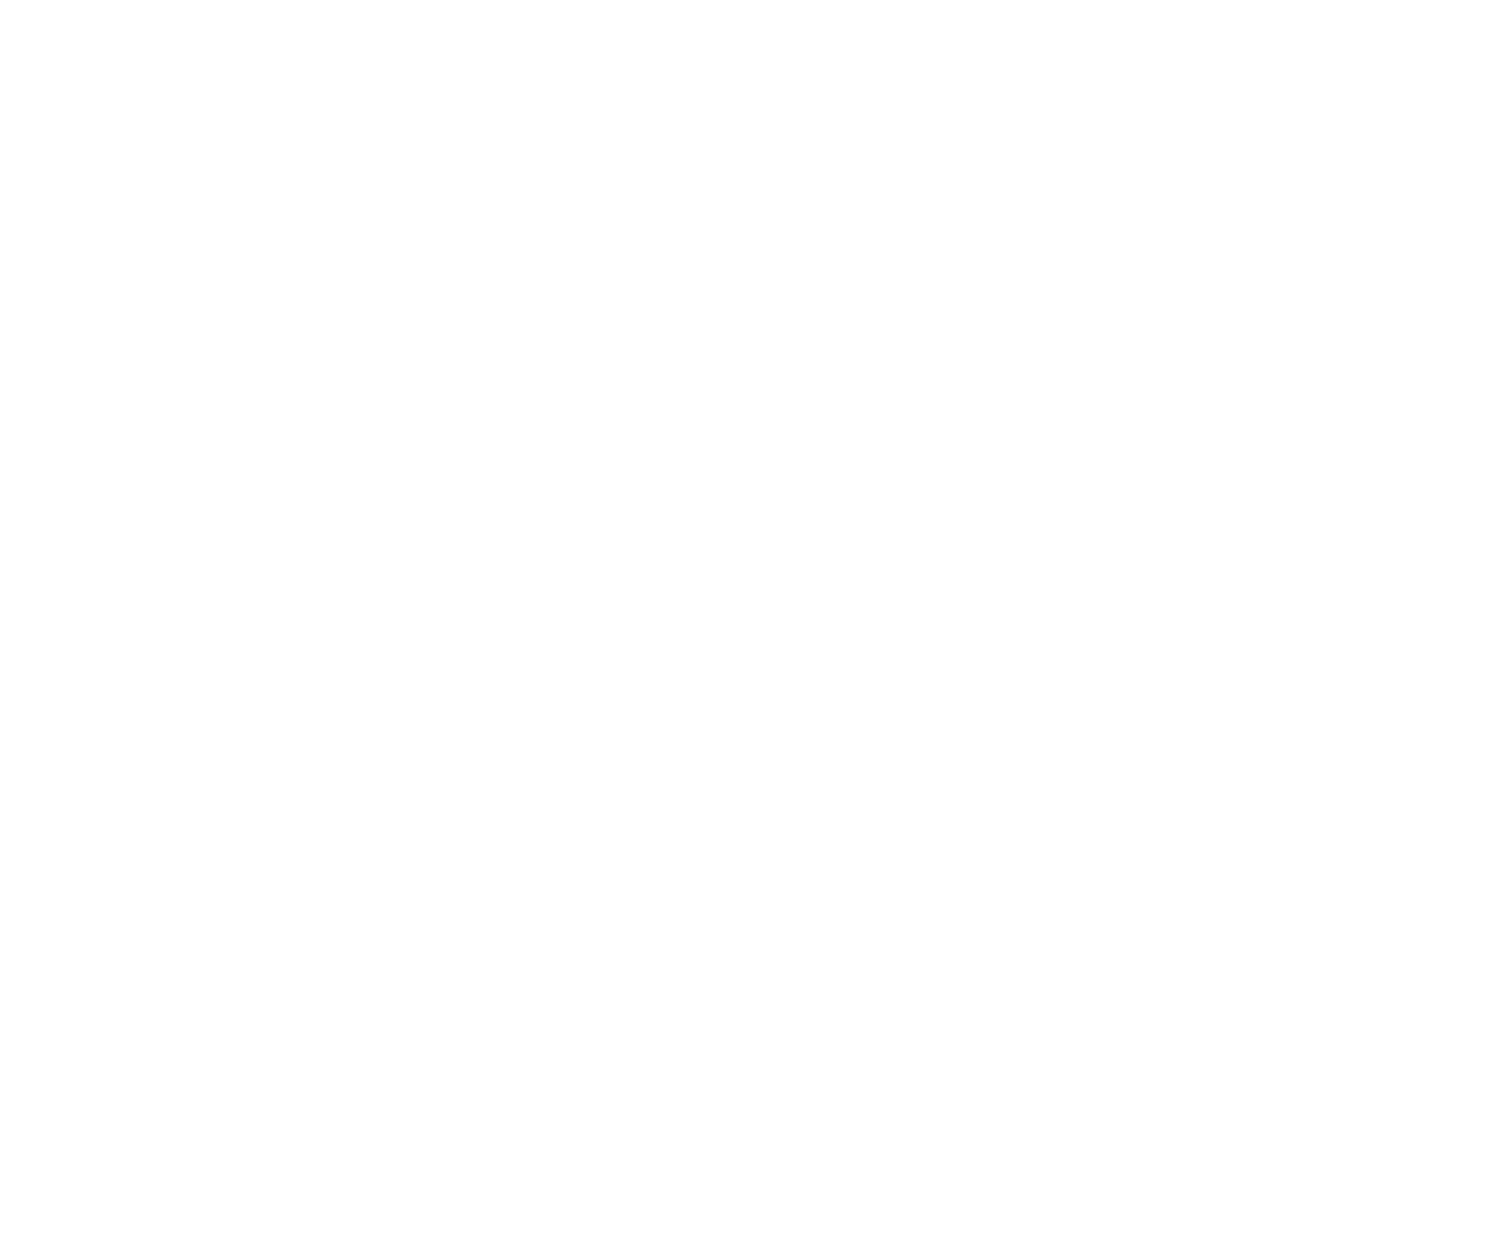 Kc print garage letterpress studio kansas city reheart Gallery